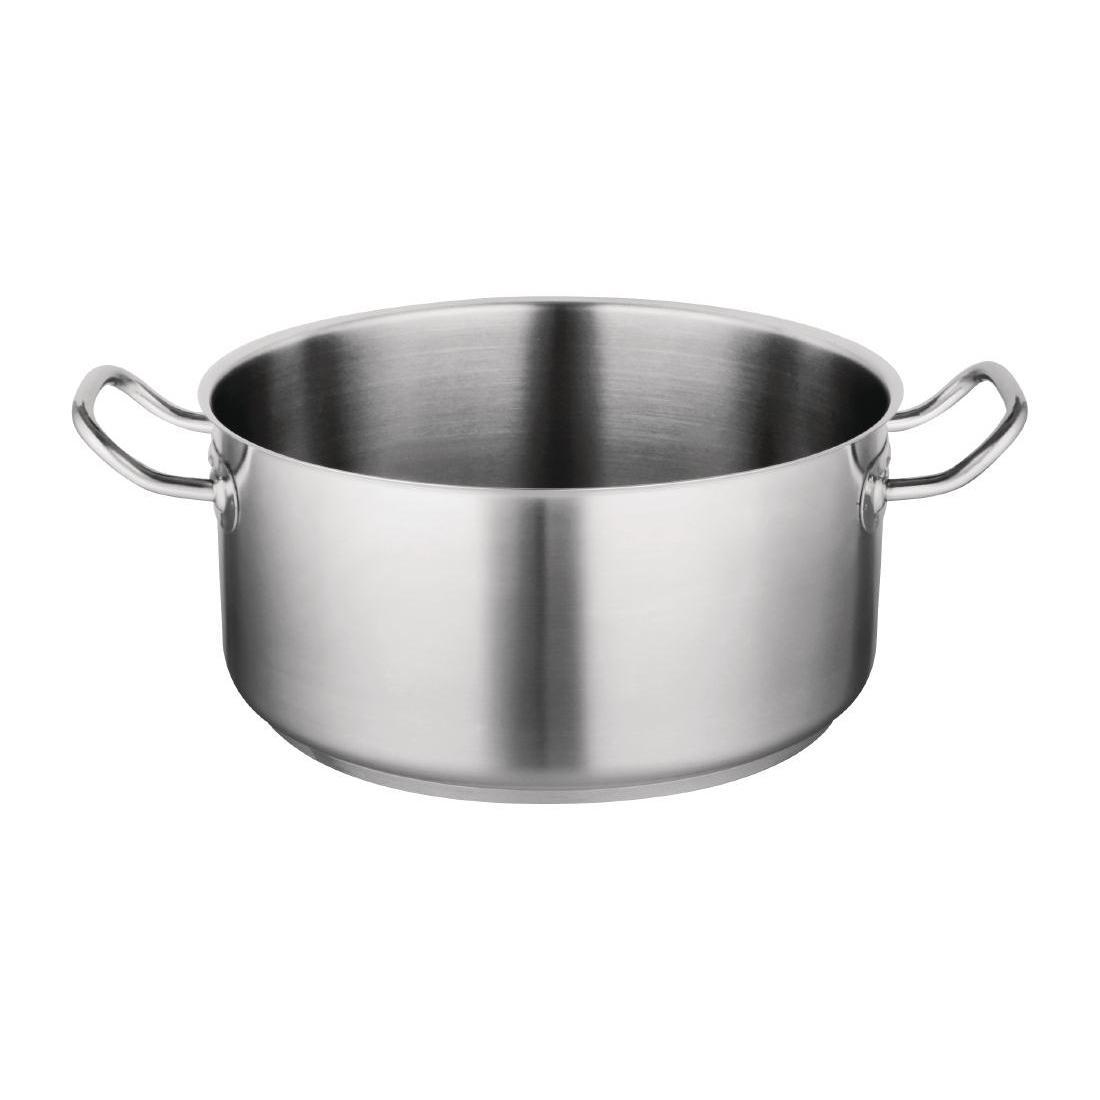 Vogue Casserole Pan 13Ltr - T187